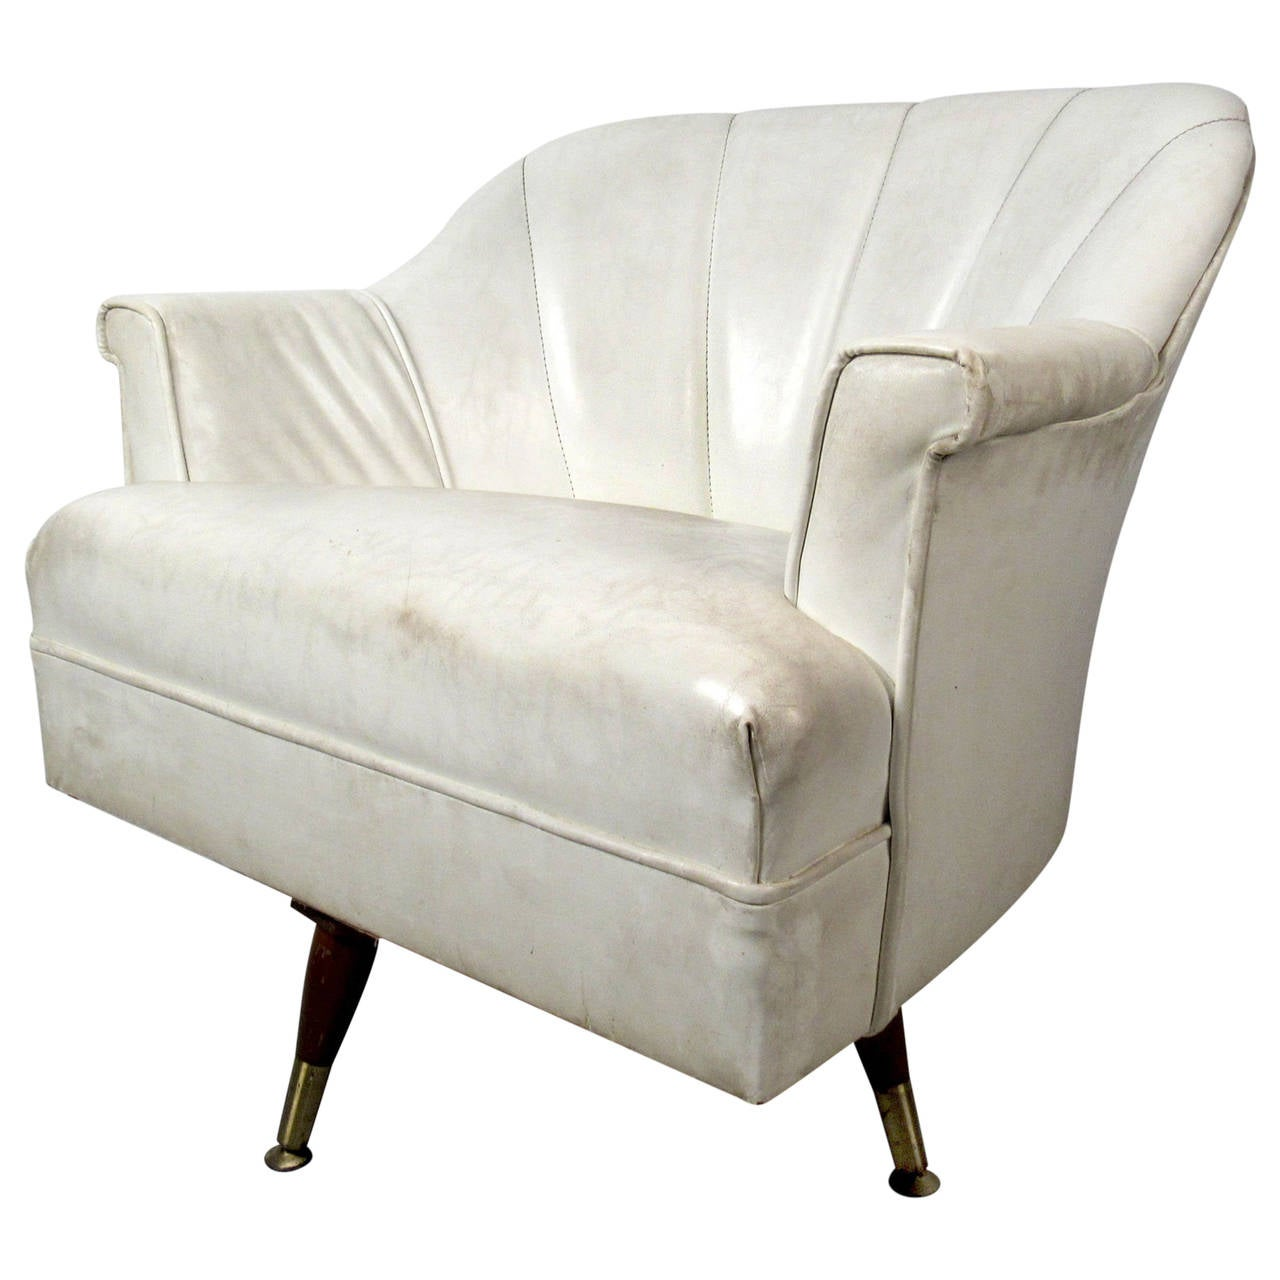 white chairs for sale fairfield furniture mid century modern vinyl lounge chair at